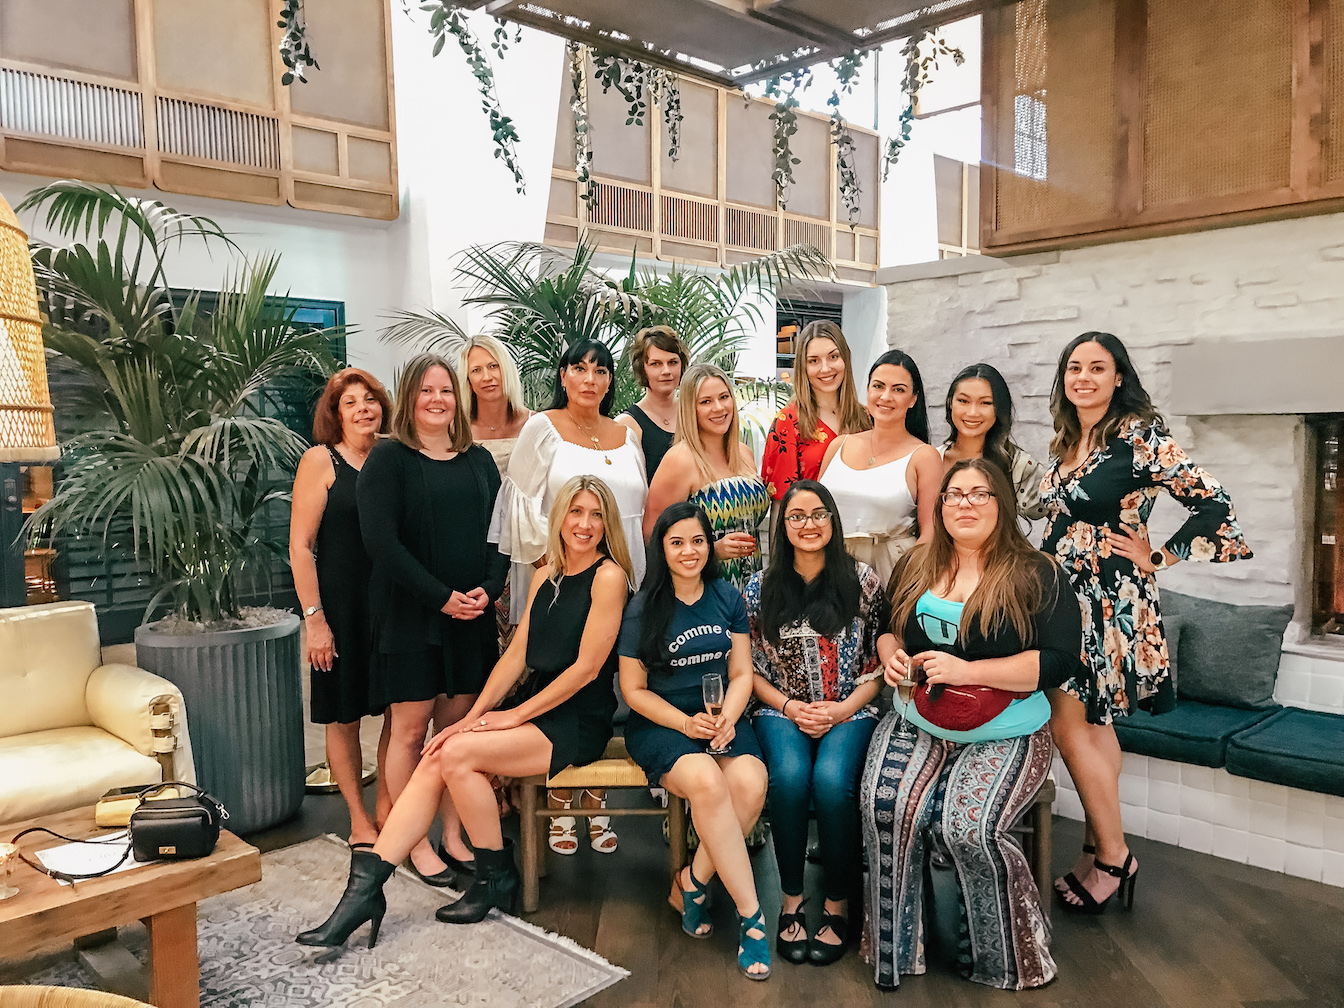 We Are Travel Girls Scottsdale Meet Up At The Canal Club